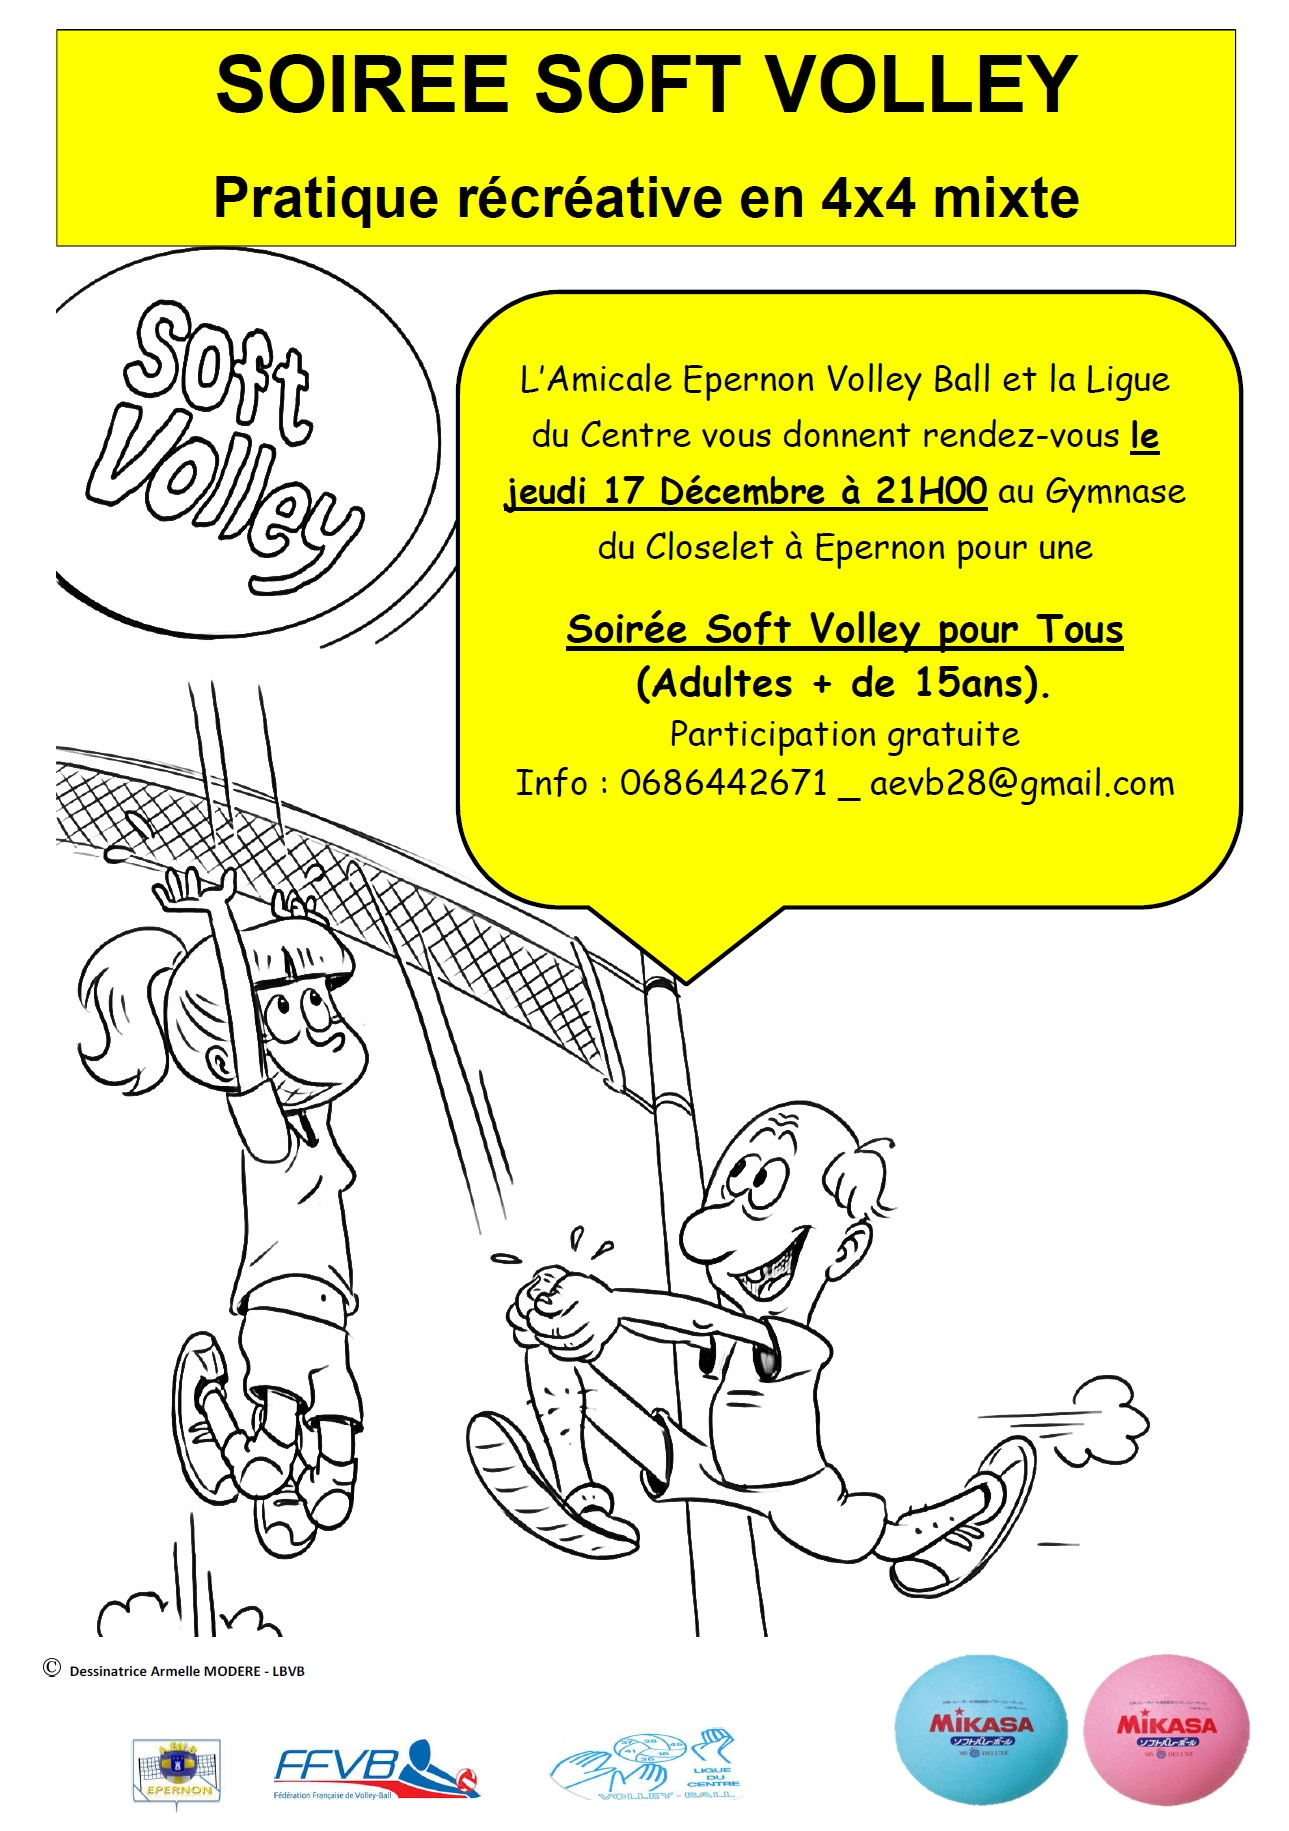 AfficheSoftVolley AmicaleEpernonVolley LigueduCentre